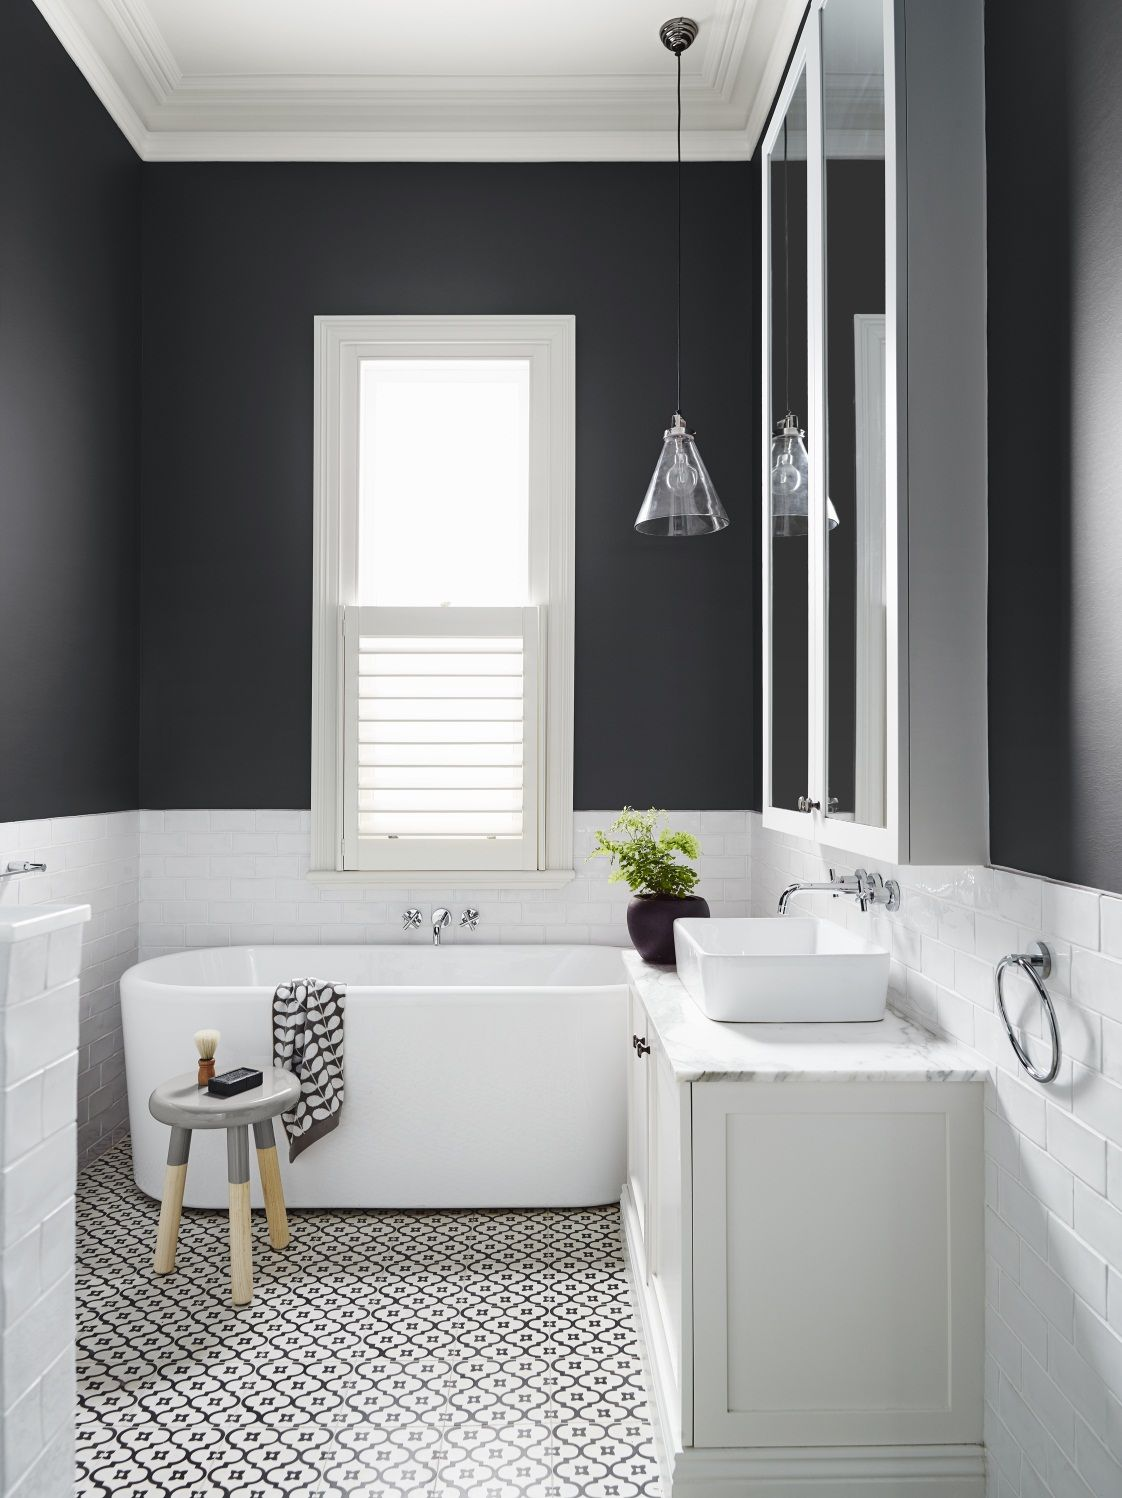 Beispiele Badezimmer Badezimmer Designs Ideen 16 Beaufiful Happy Weekend 5 Things I Love 12 Interior Inspo Powder Room